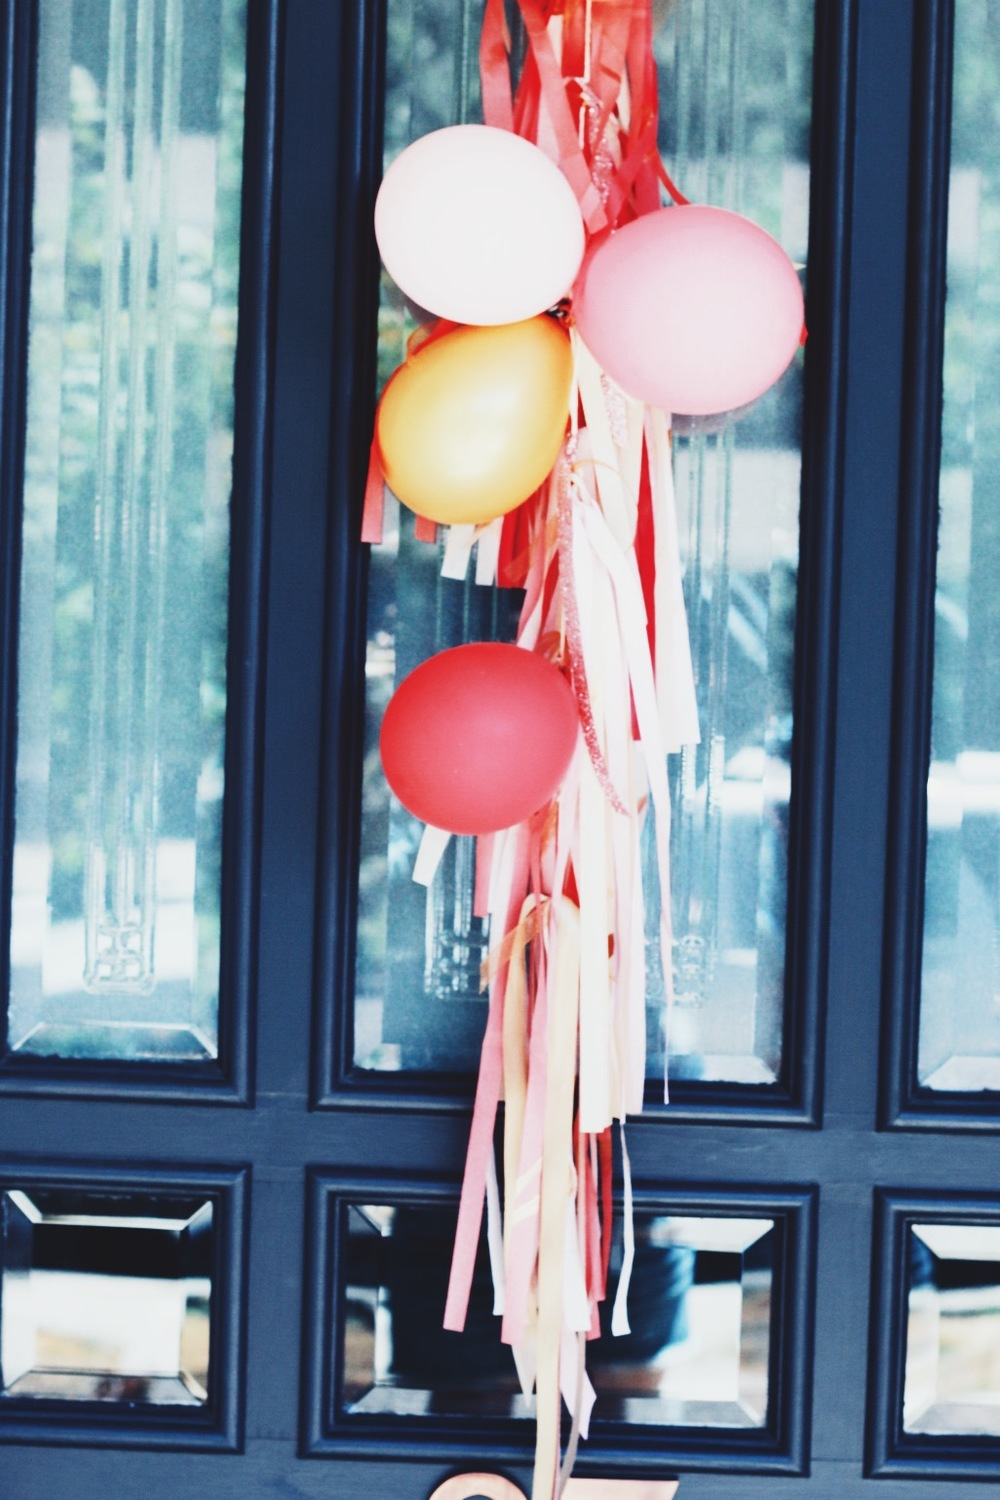 liftedballoons-.doorswag-mini-balloon-pearls-birthday-party-danville-ca